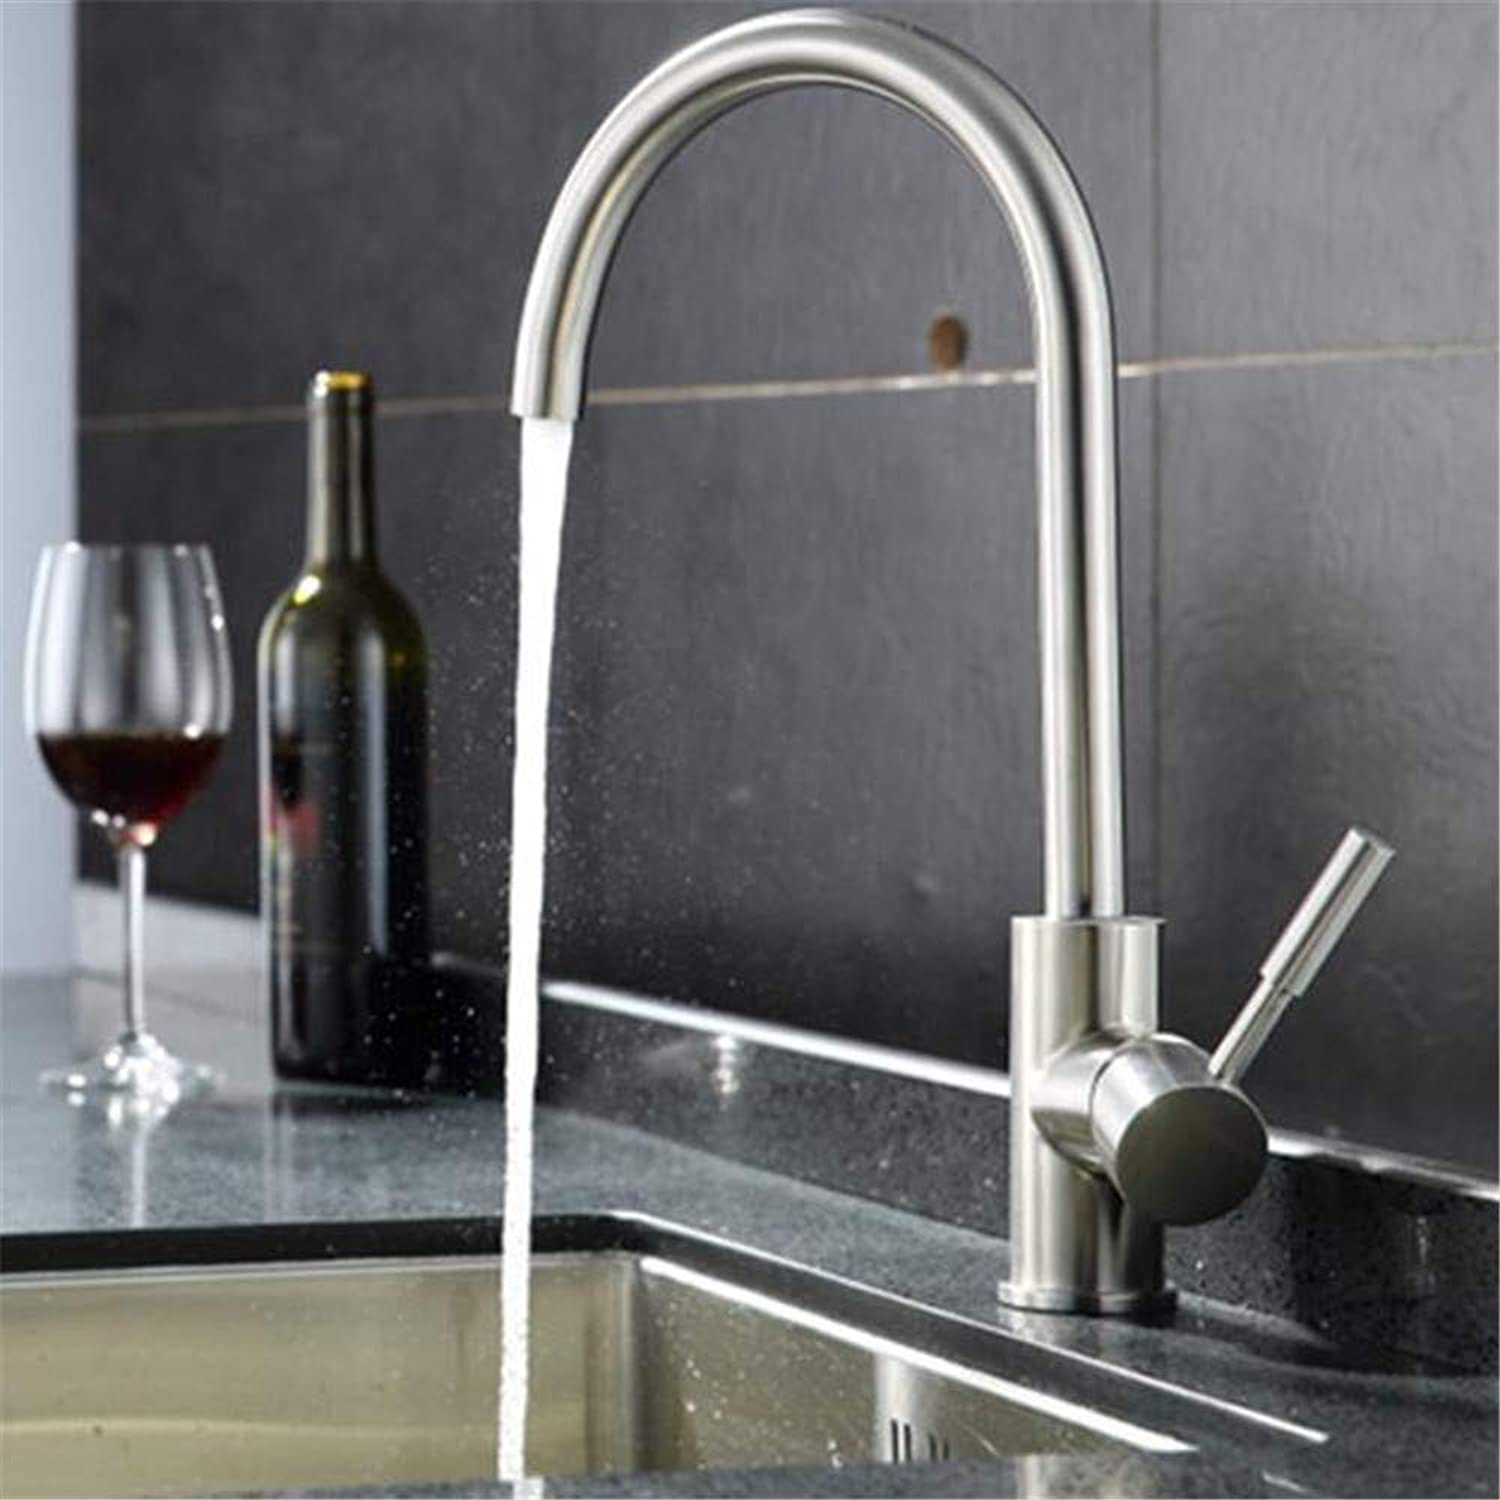 FuweiEncore Stainless Steel redary Mixer Kitchen Faucet Caipen Lead Drink Straight Stainless Steel Kitchen Faucet 304 (color   -, Size   -)